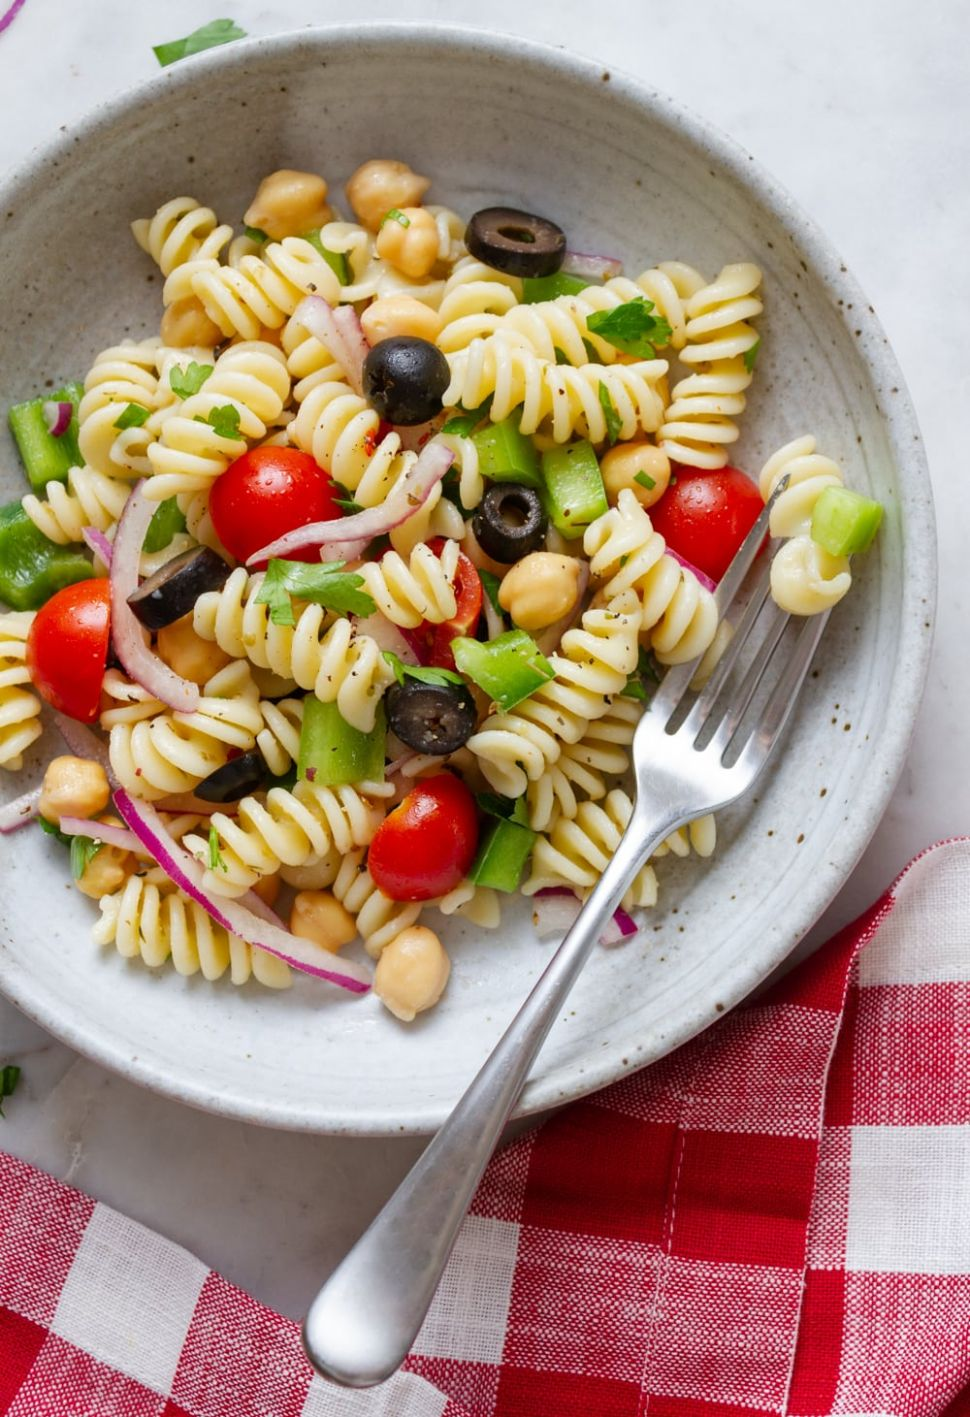 QUICK & EASY VEGAN PASTA SALAD - Vegan Recipes Quick